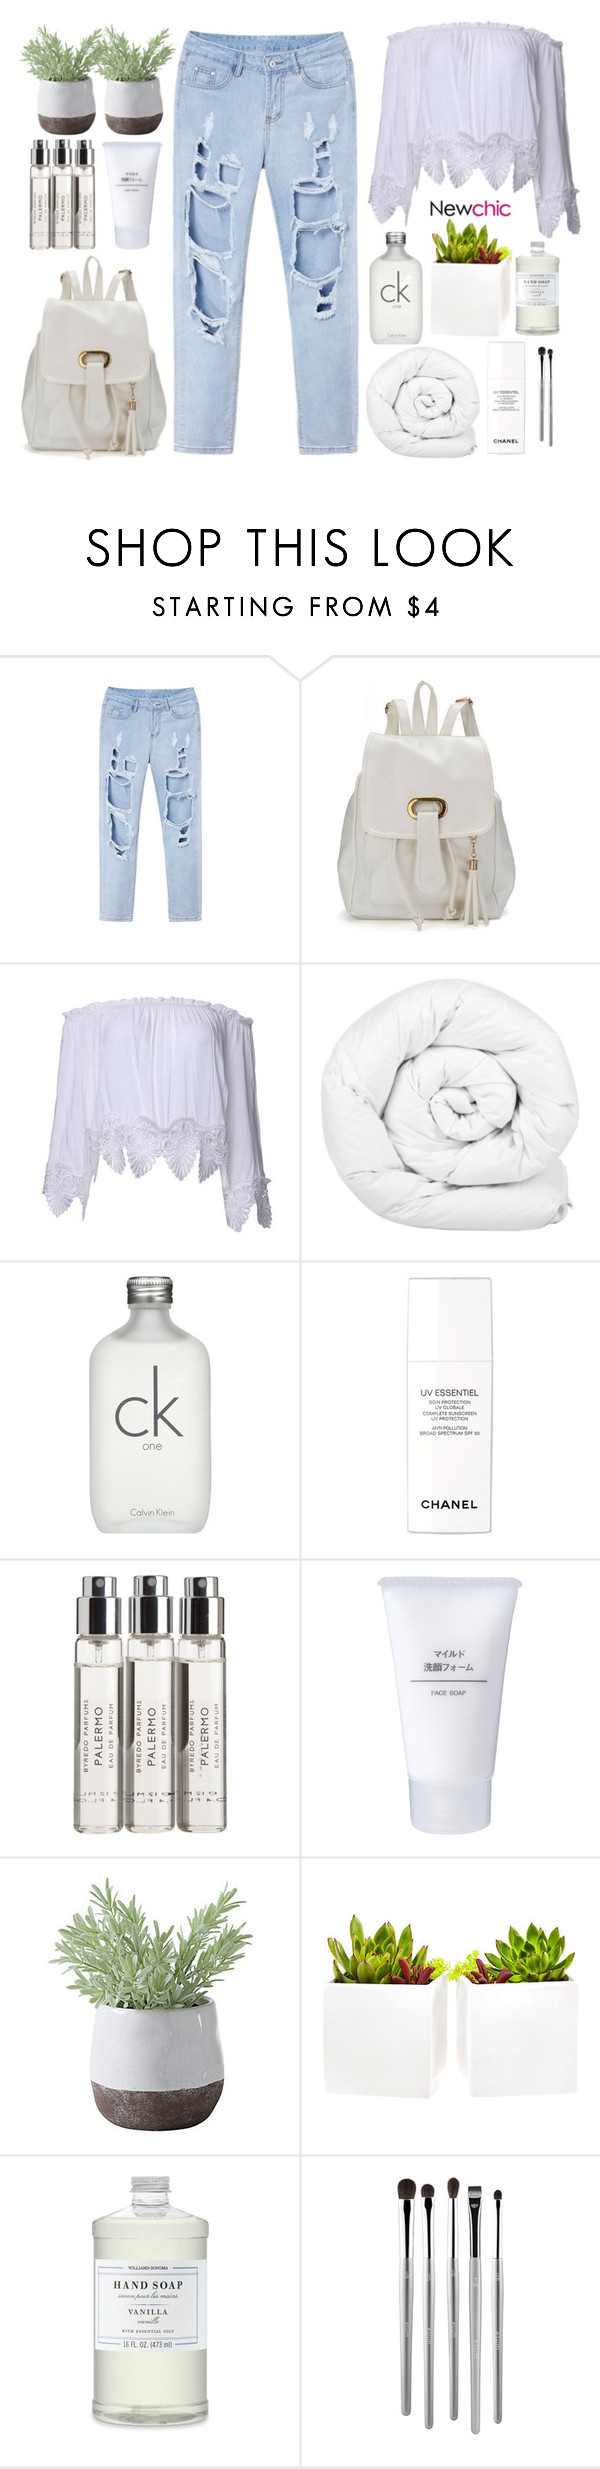 """""""#Newchic"""" by credentovideos ❤ liked on Polyvore featuring Brinkhaus, Calvin Klein, Chanel, Byredo, Muji, Torre & Tagus, Shop Succulents, Williams-Sonoma and esum"""